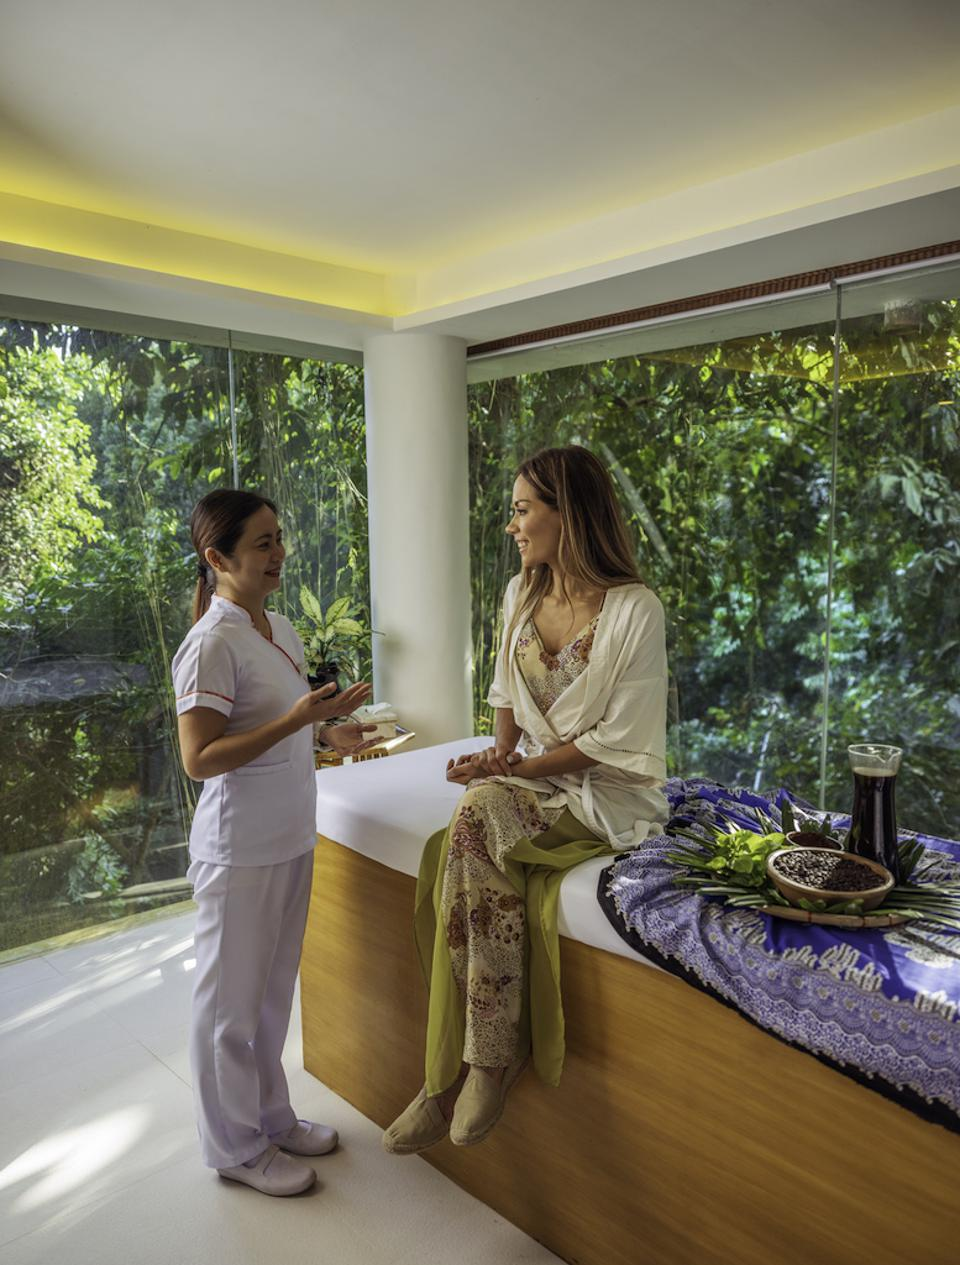 The Farm at San Benito offers a unique range of holistic immune boosting treatments